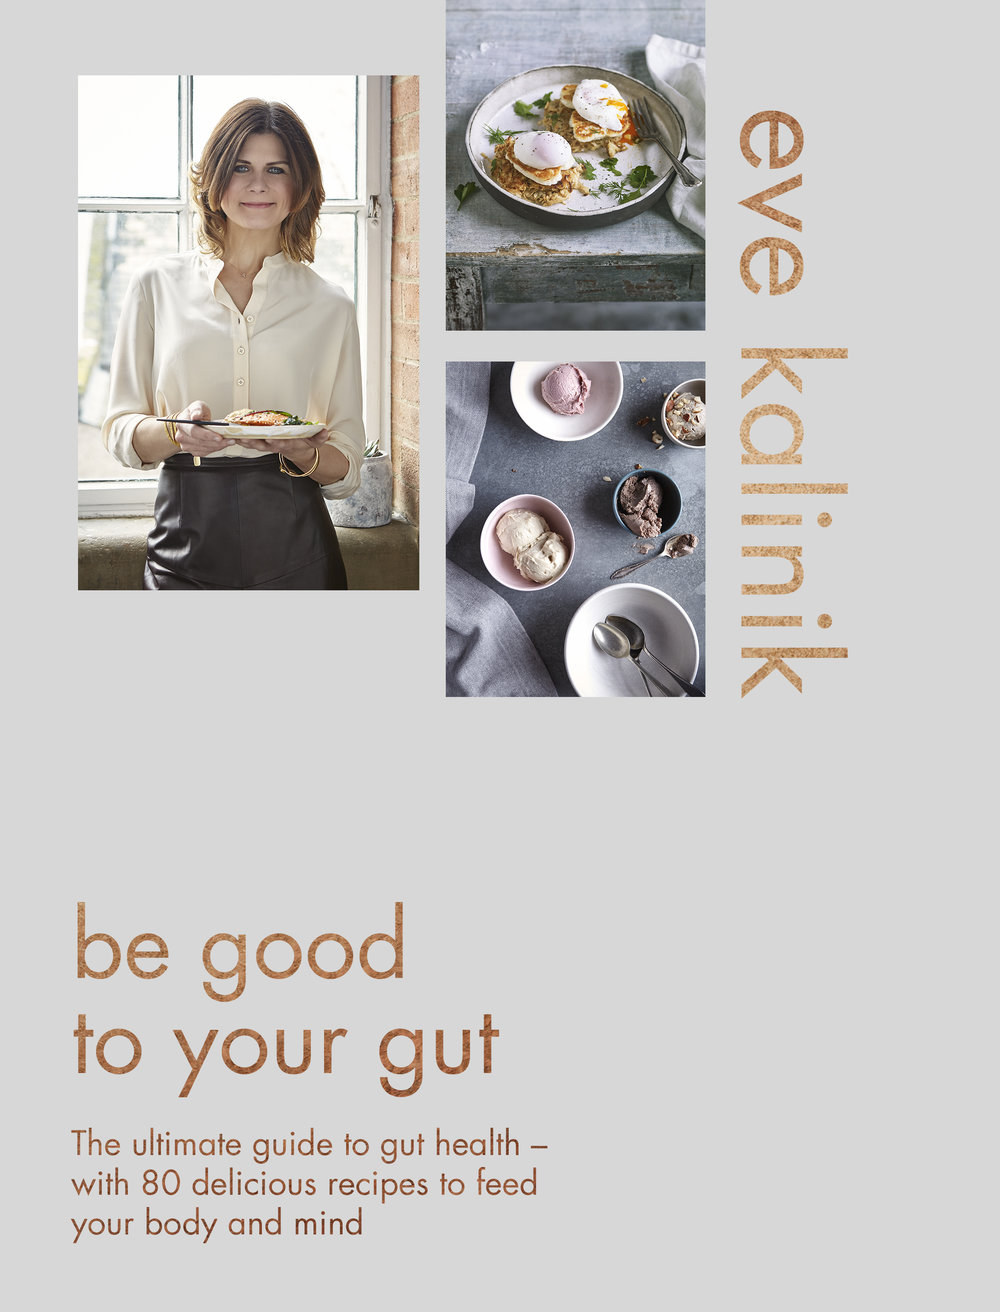 BE GOOD TO YOUR GUT by Eve Kalinik Food/Health, 256 page Piatkus, Sept 2017 Combining solid science and practical advice with inspiring and delicious recipes, Be Good to Your Gut will highlight the importance of good gut health and the many reasons to be enthusiastic about healthy eating. It will teach readers how to use food to support digestion, without sacrificing taste and flavour.